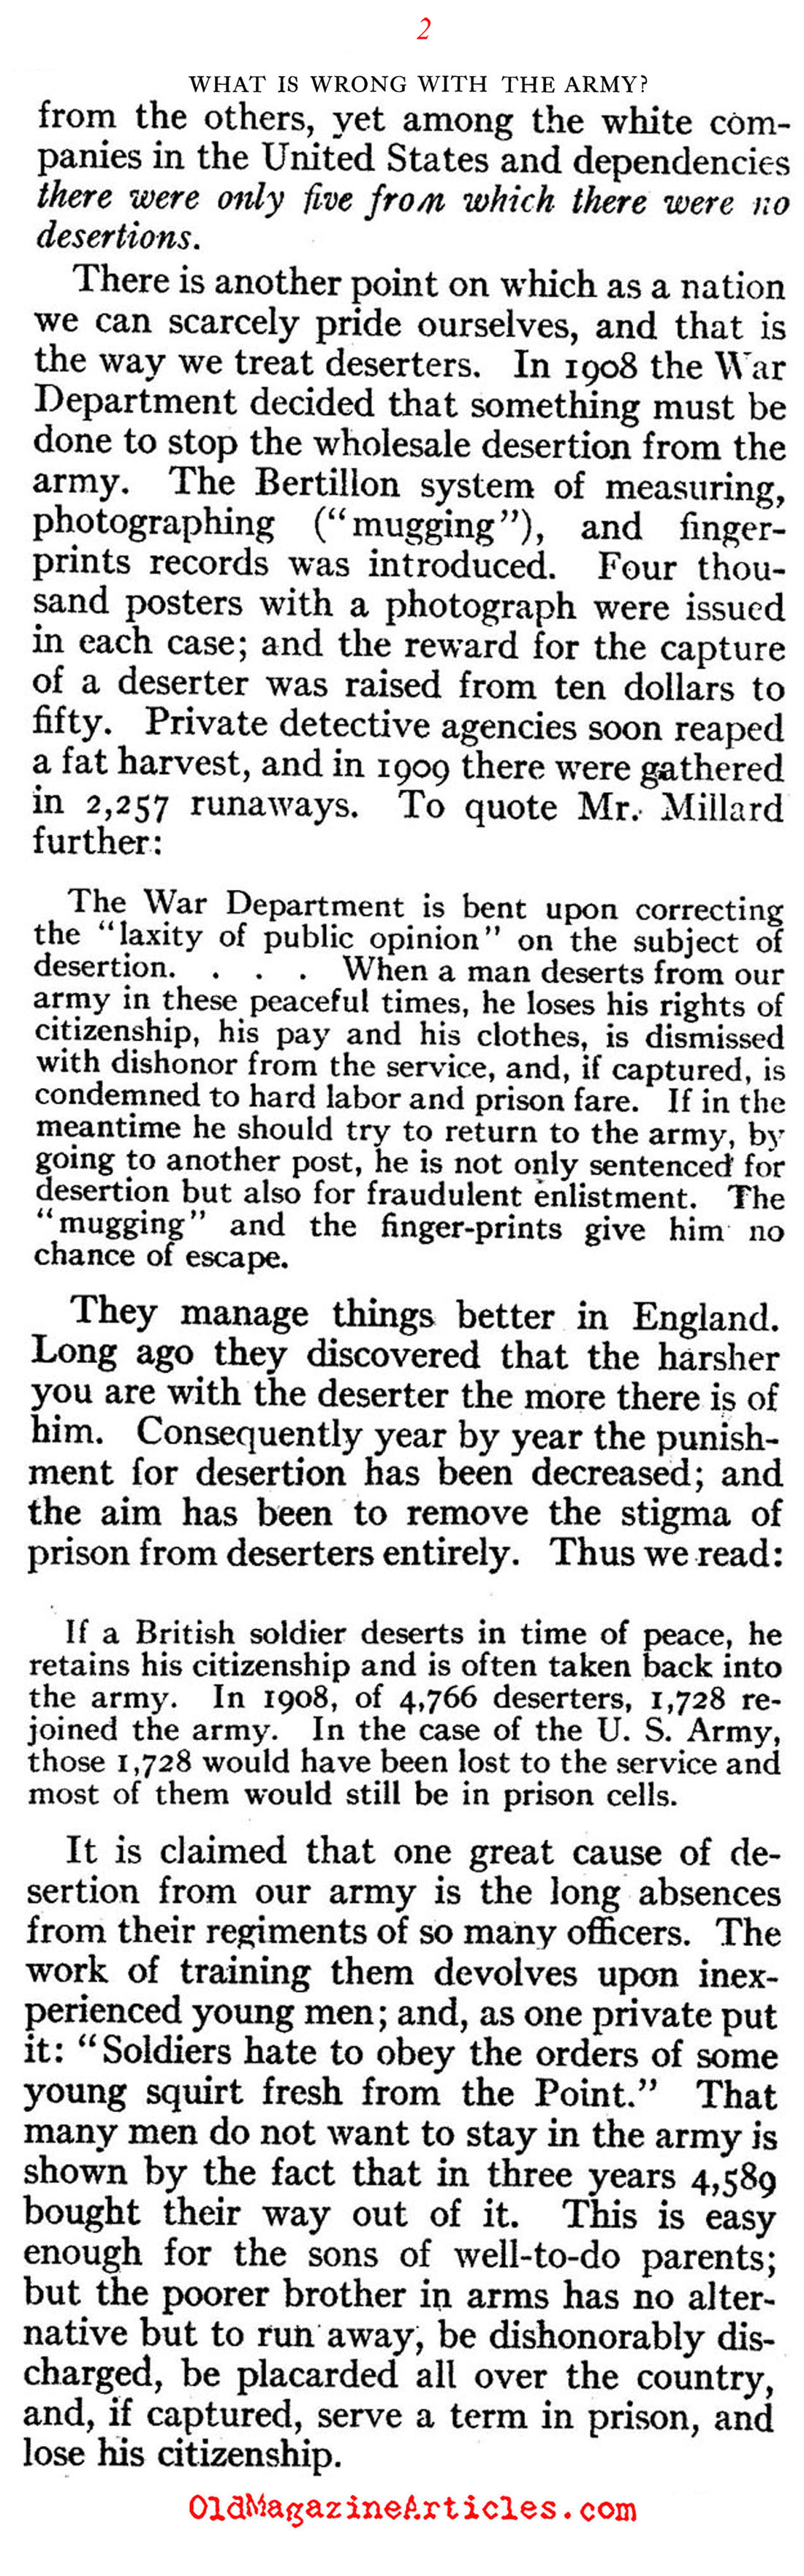 The U.S. Army: Plagued by Deserters   (Review of Reviews, 1910)